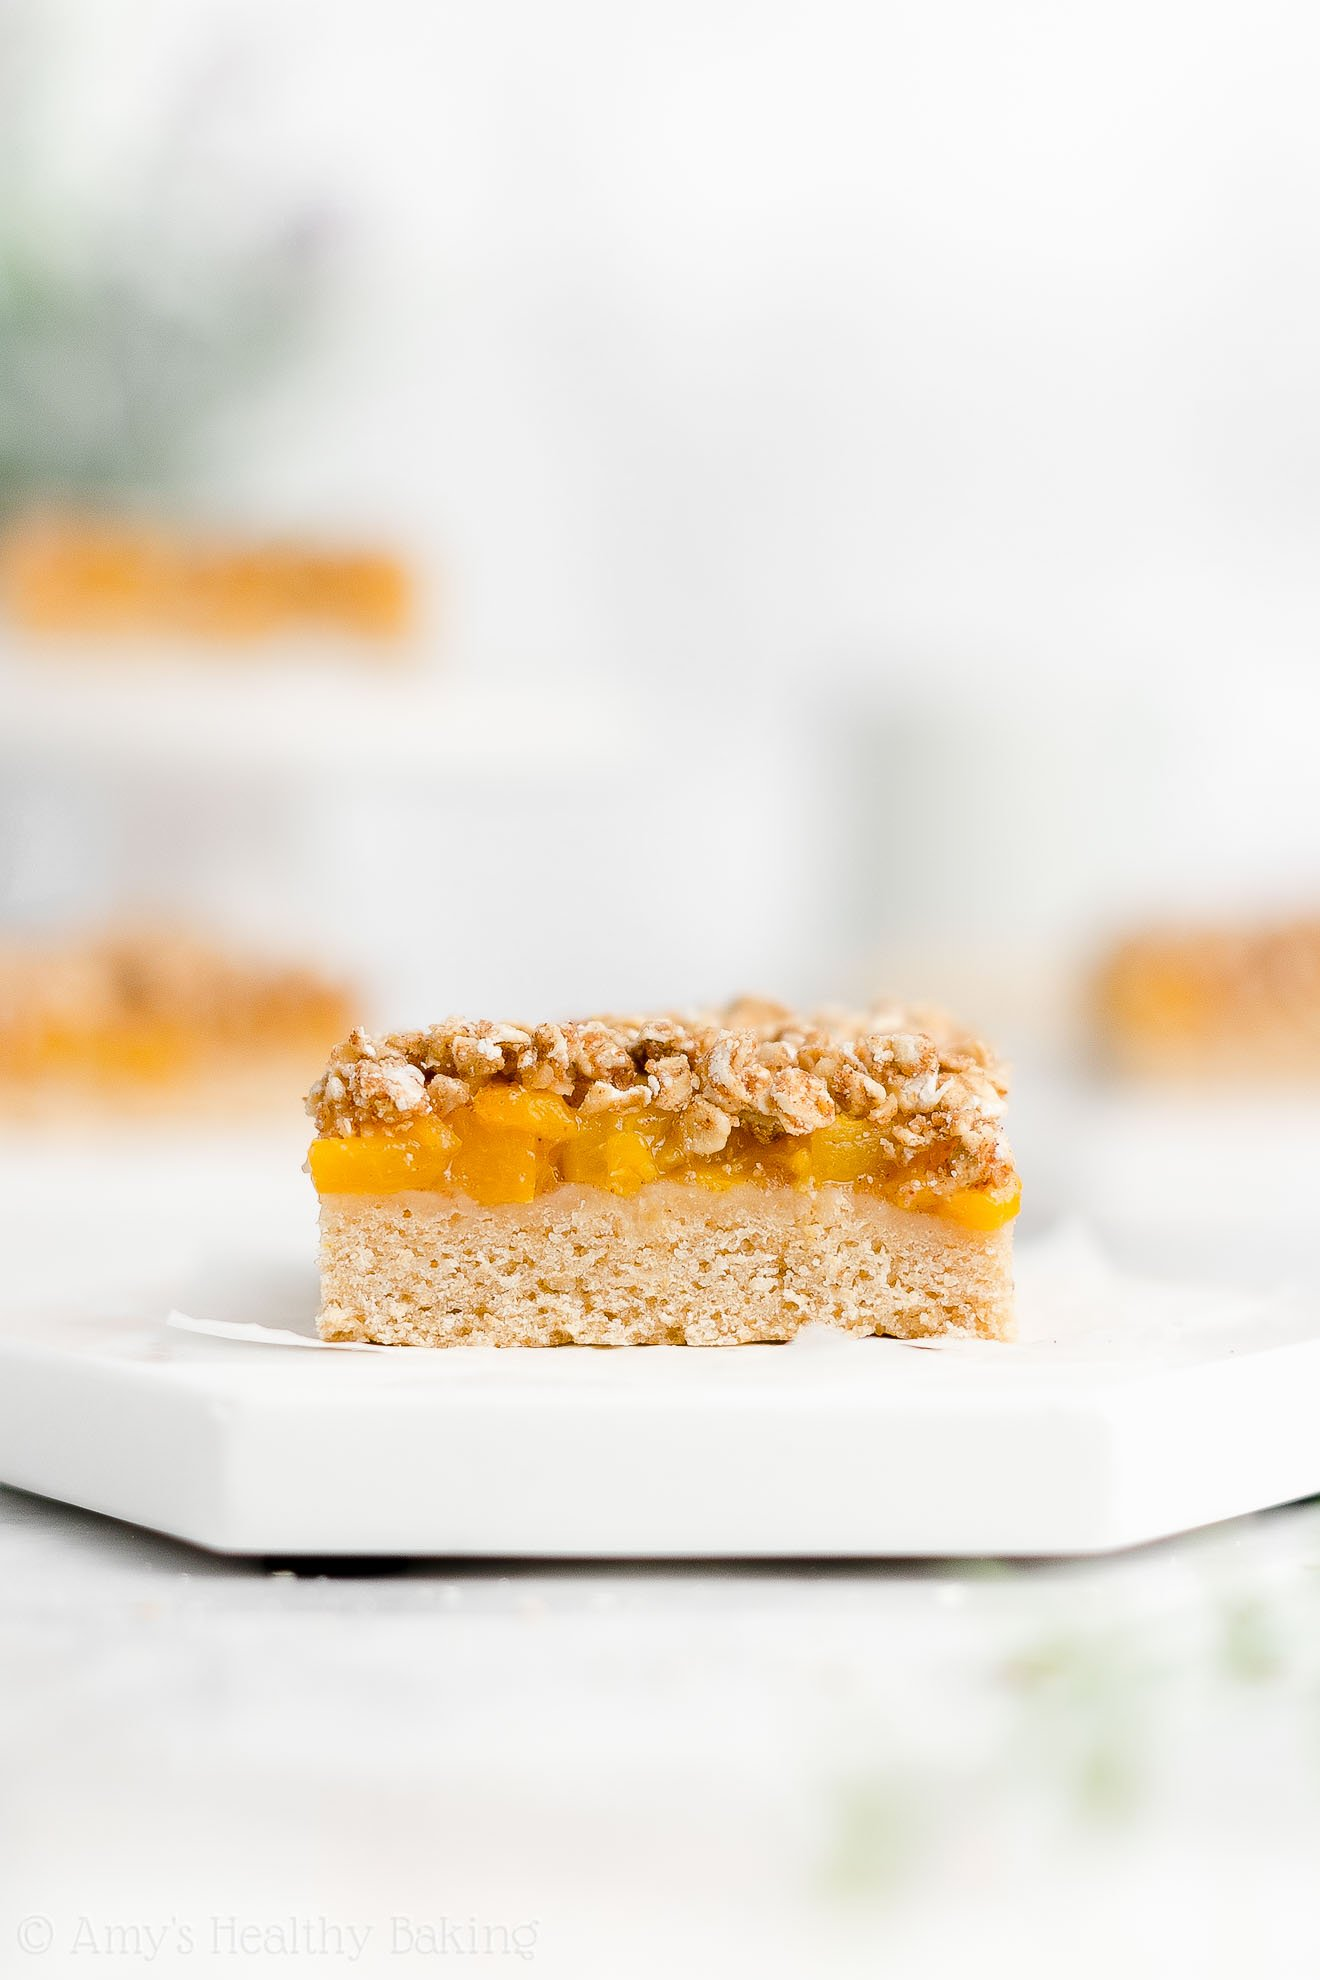 Easy Healthy Low Fat Weight Watchers Egg Free Canned Peach Crumble Bars